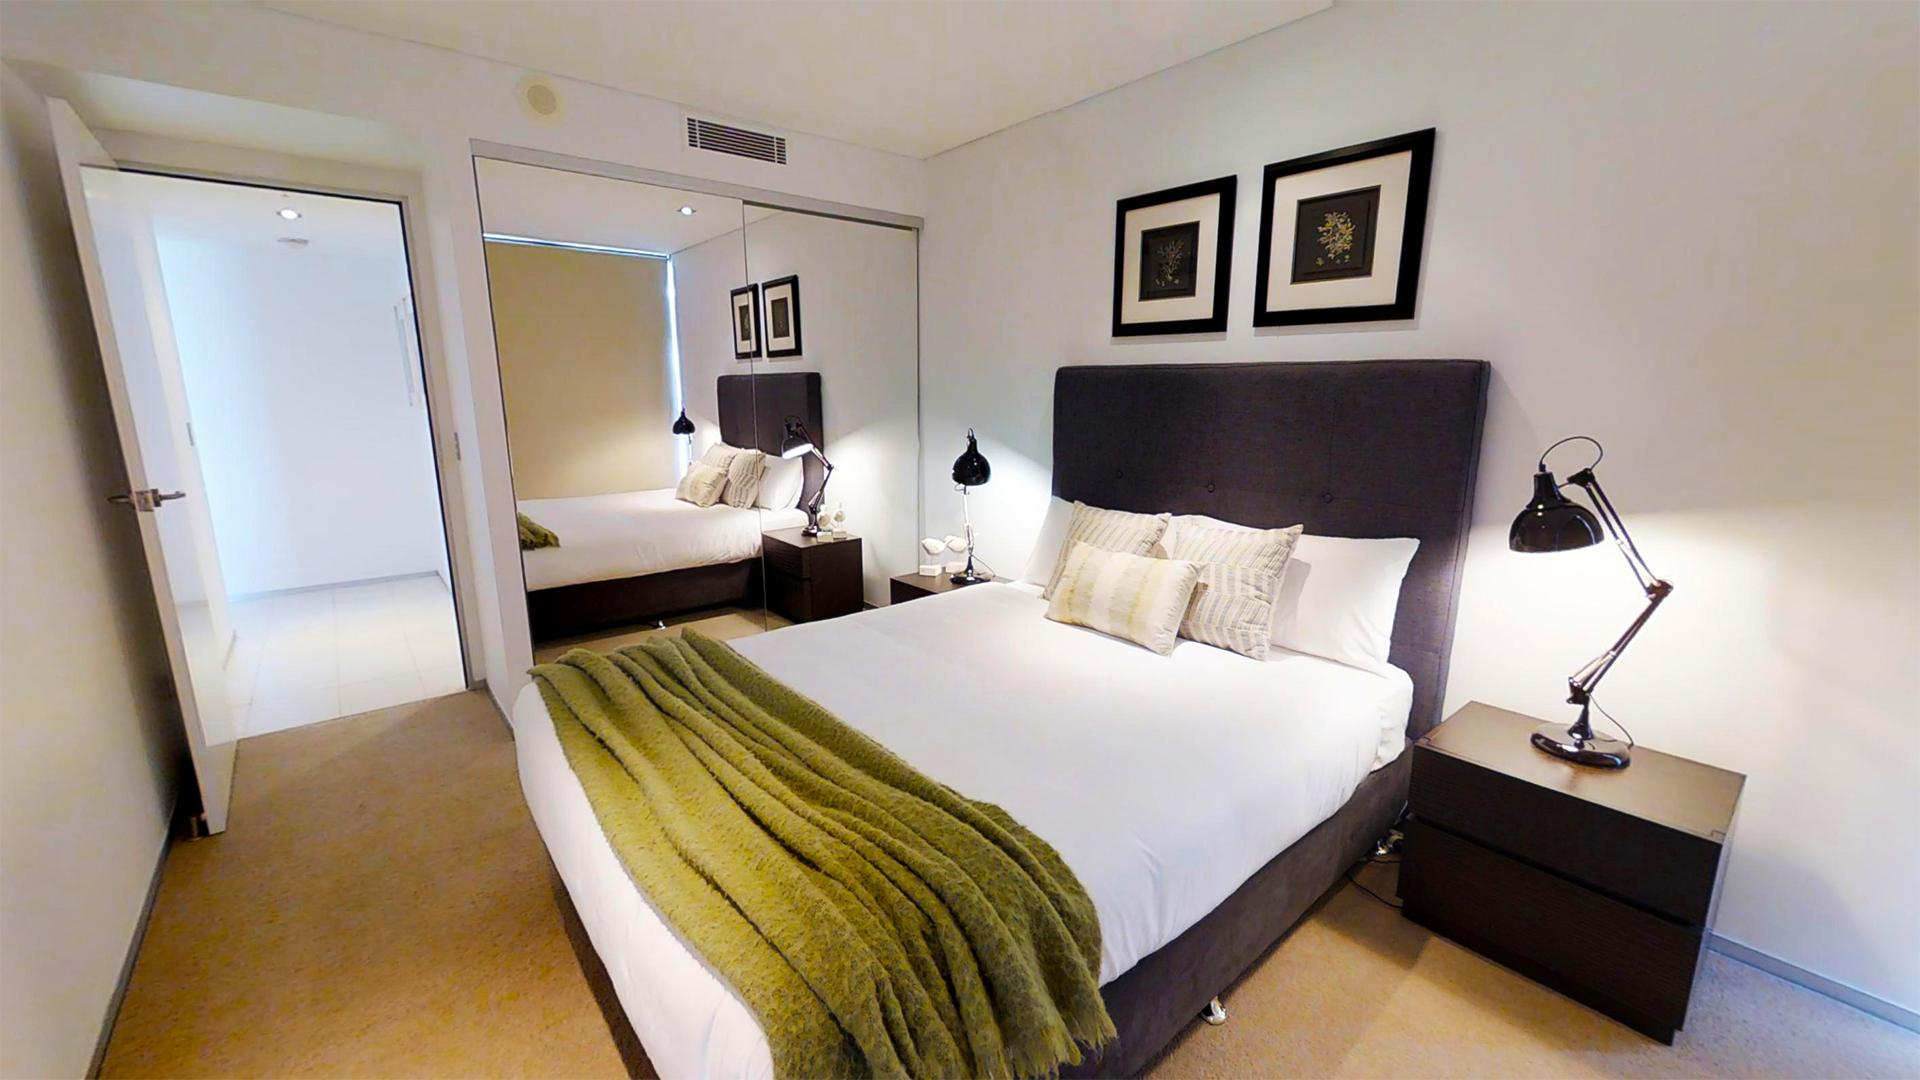 One-Bedroom Luxury Apartment image 1 at Ambience on Burleigh Beach by City of Gold Coast, Queensland, Australia